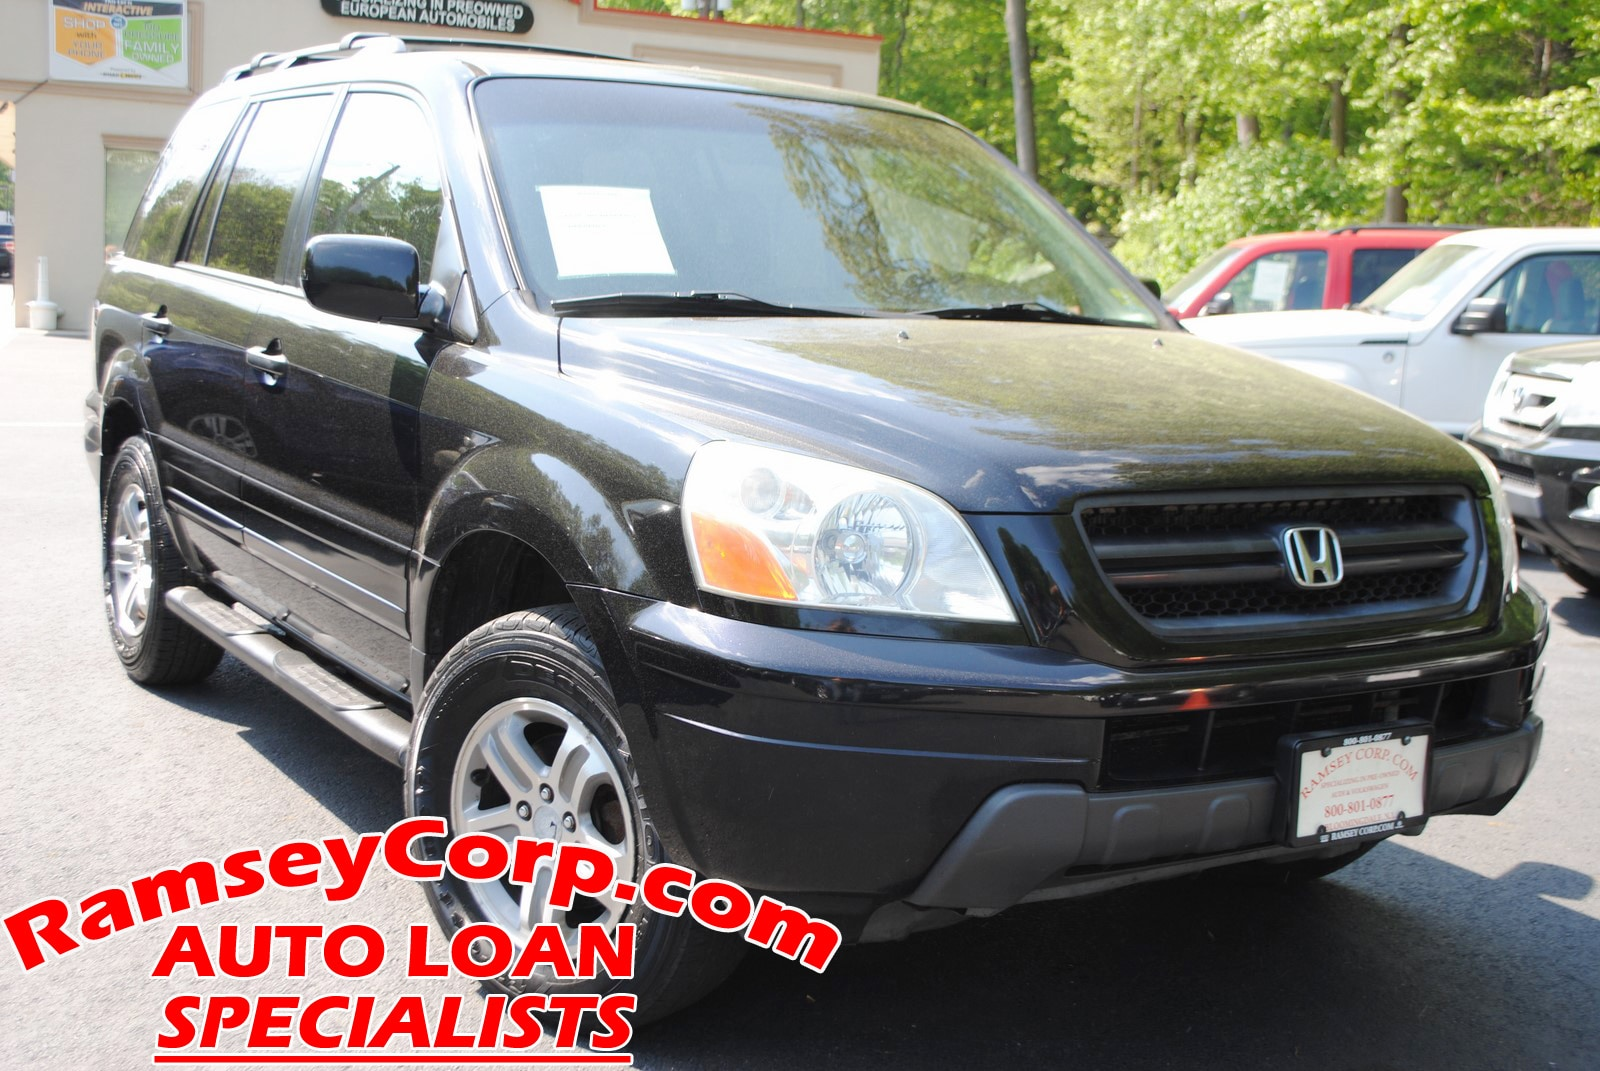 2003 Honda Pilot Check Engine Light Car Maintenance Console Cover Oil Pressure Switch Location 2006 Free Image Used For Sale West Milford Njrhramseycorp